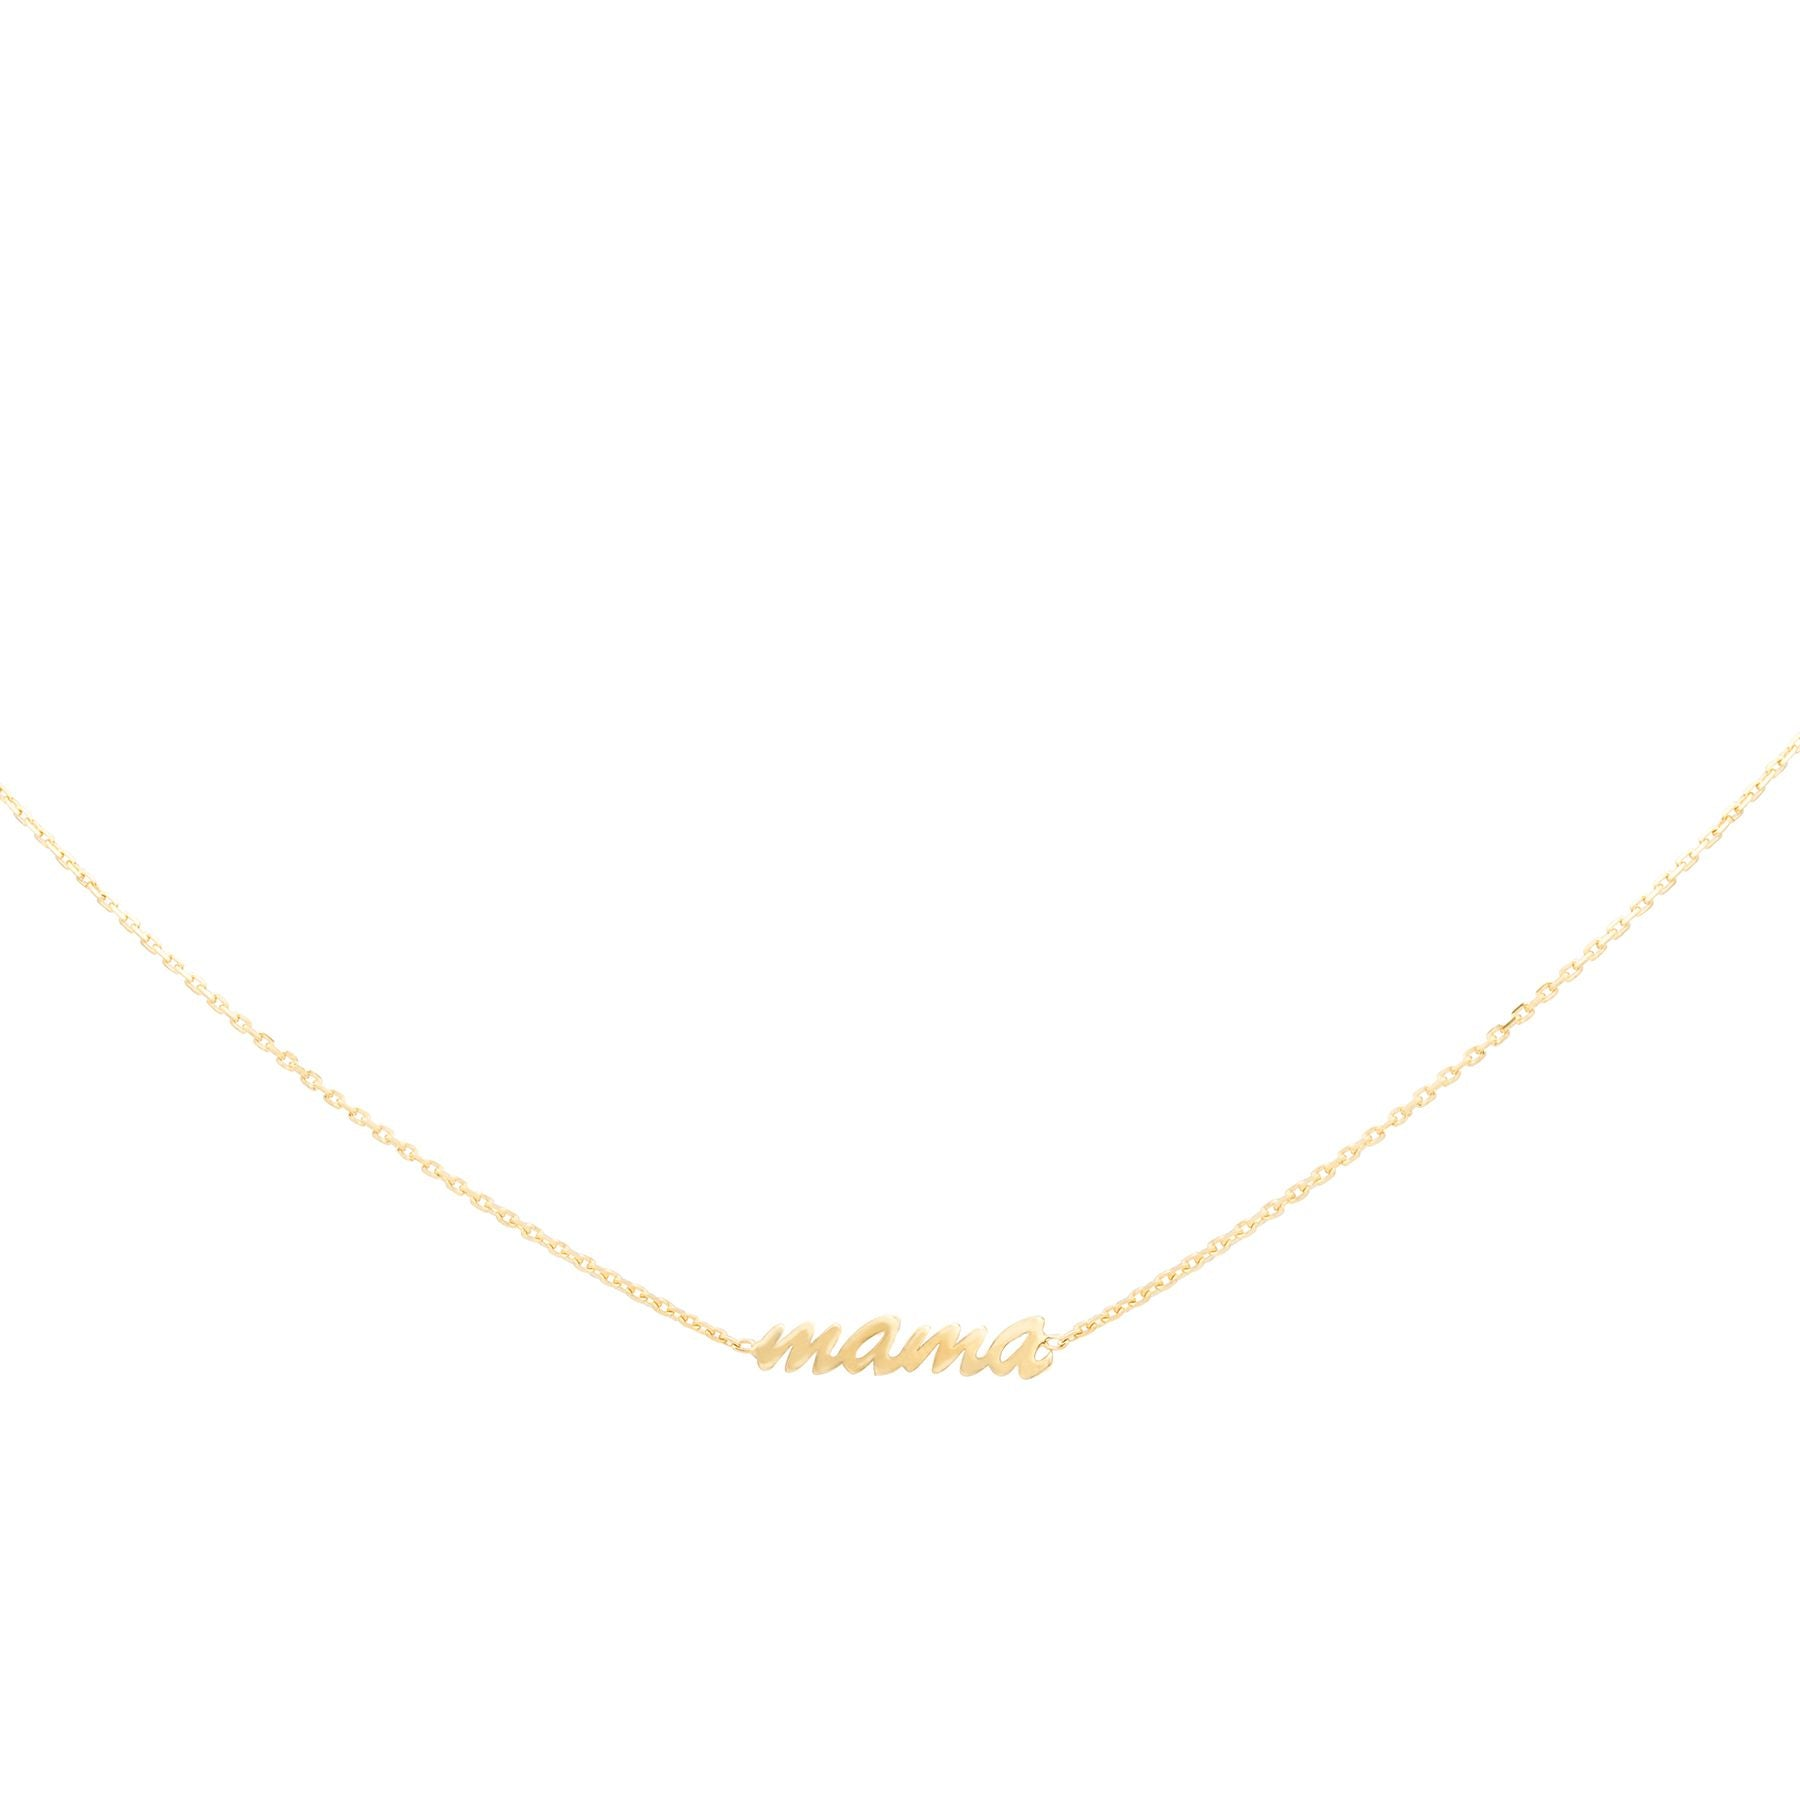 Tiny Plain Gold Adjustable Mama Necklace